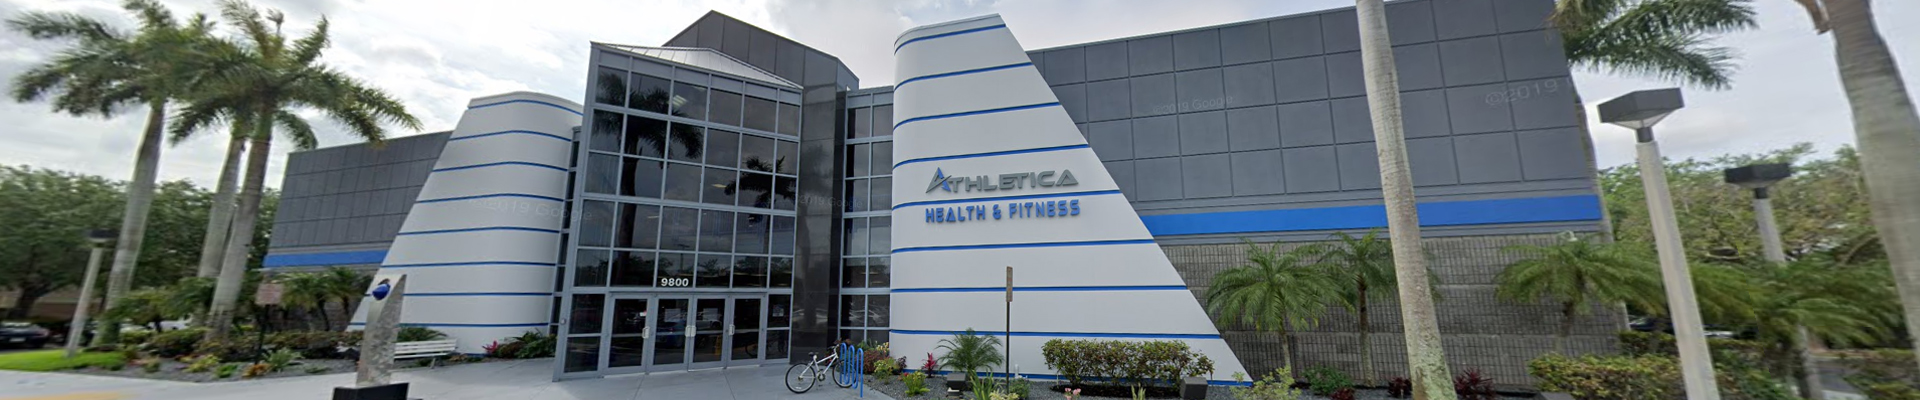 Athletica Health and Fitness